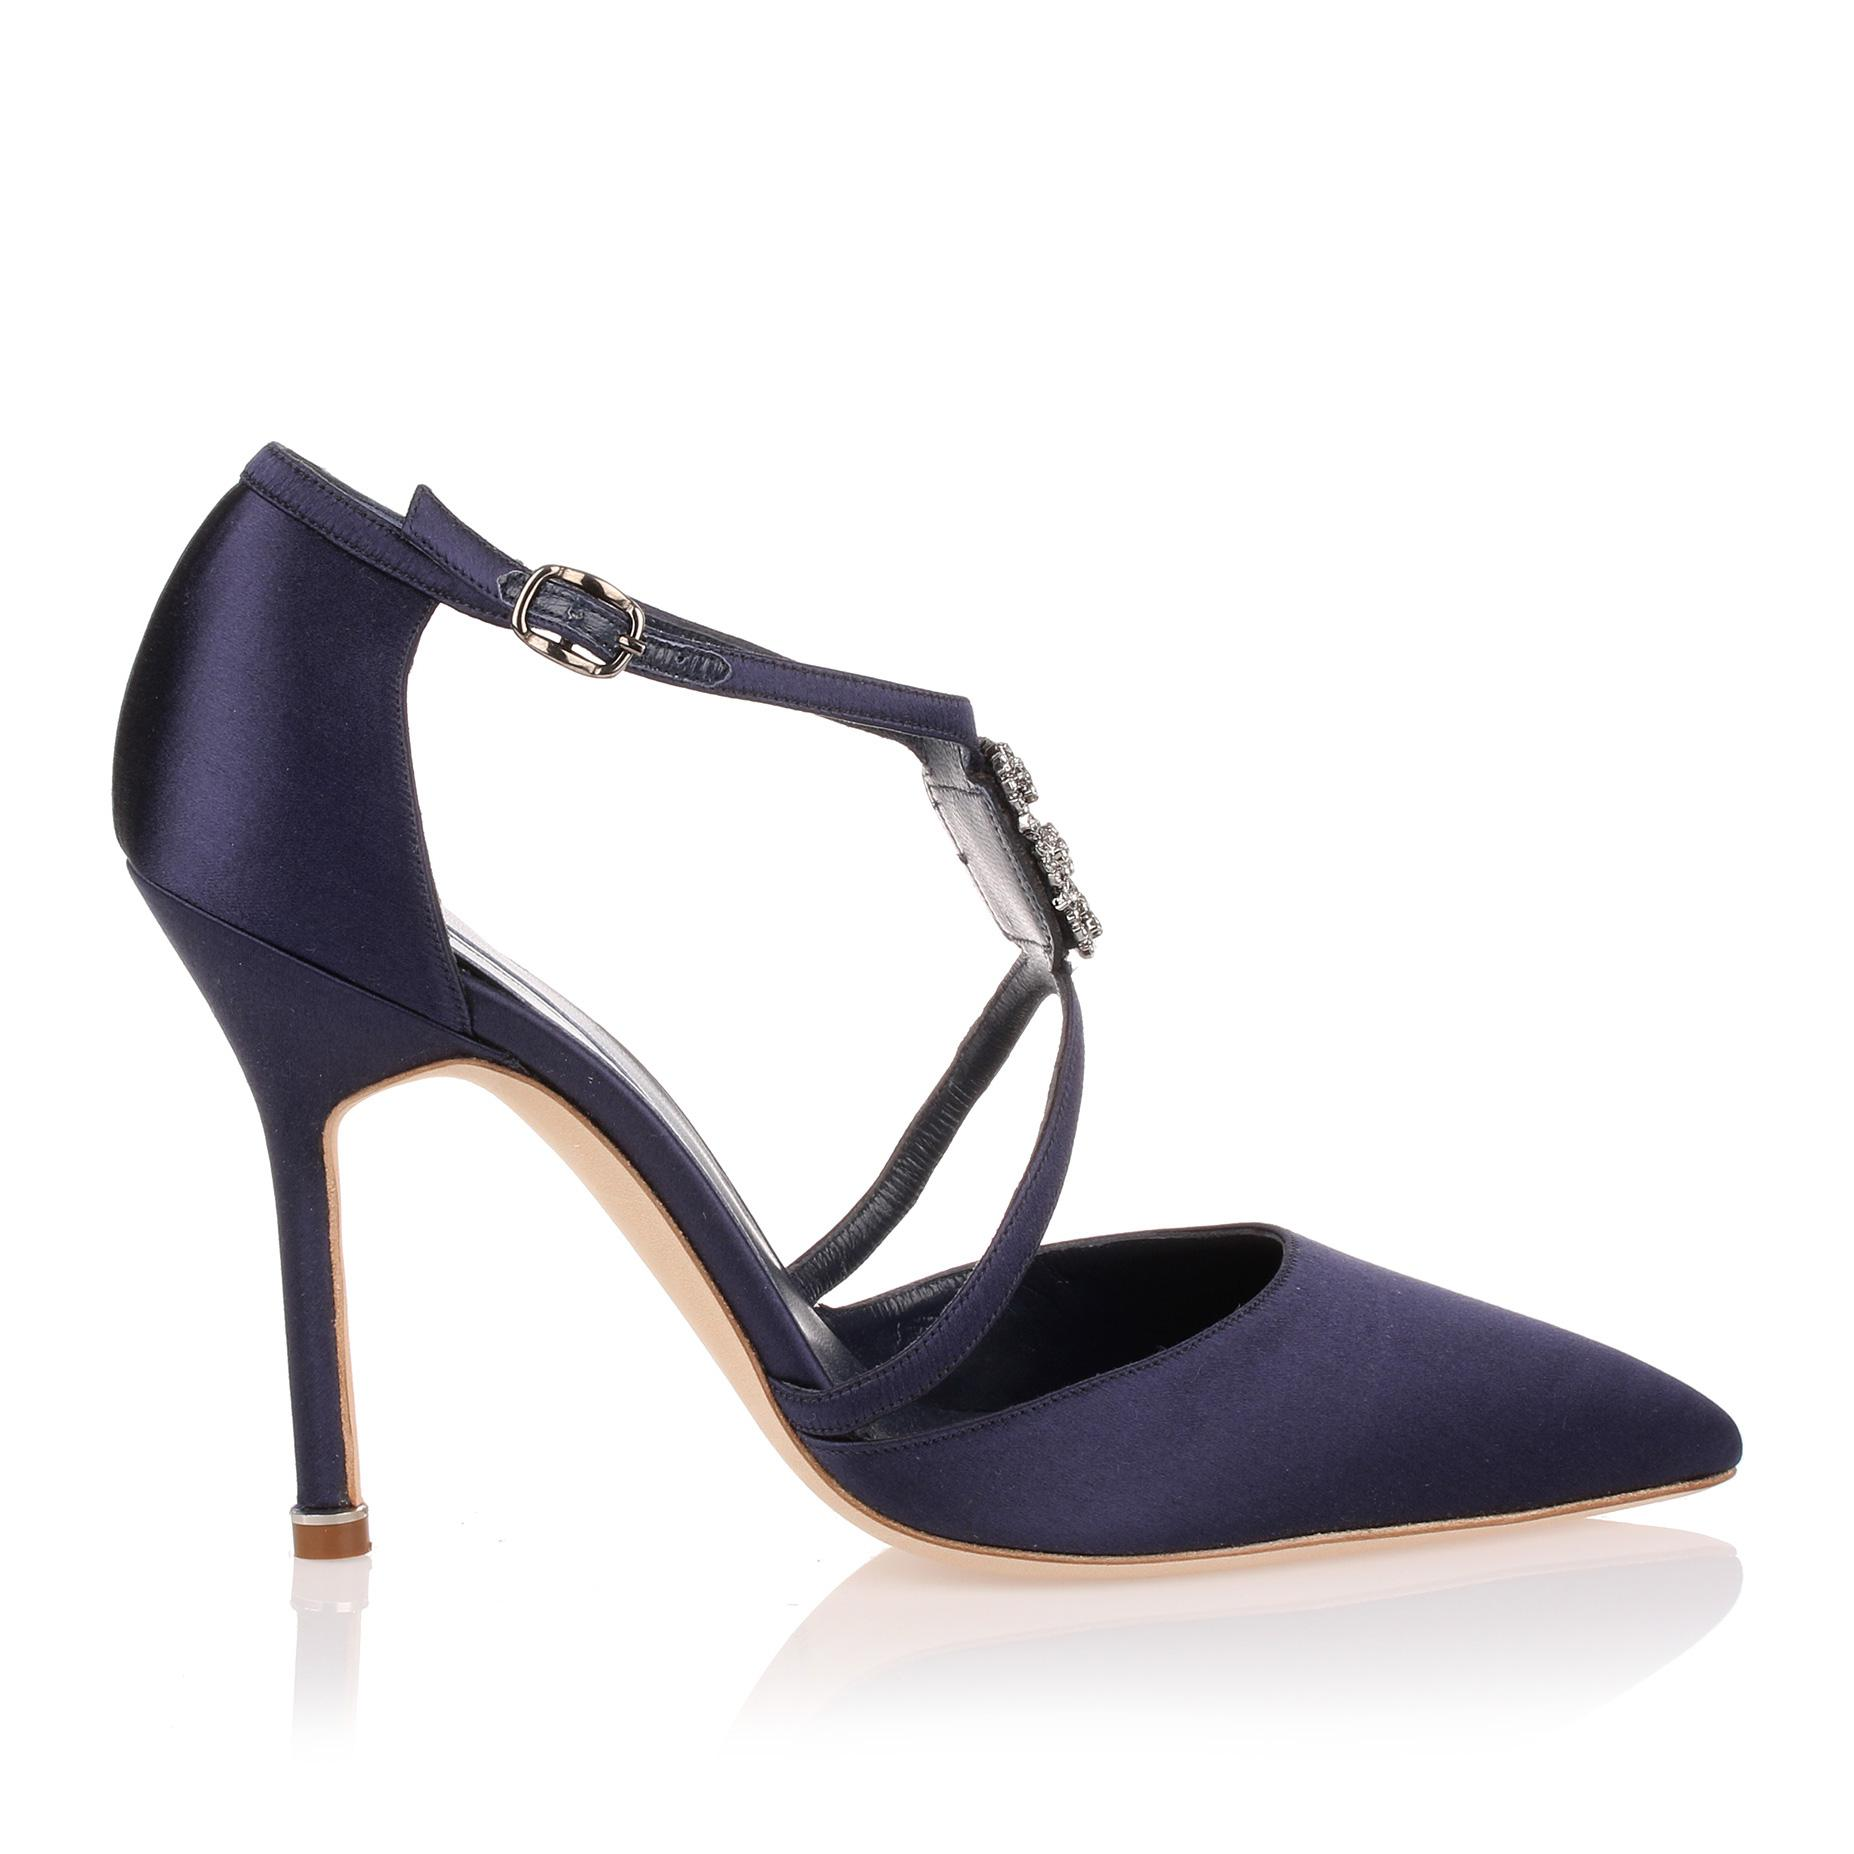 Seneca 105 satin navy pump Manolo Blahnik